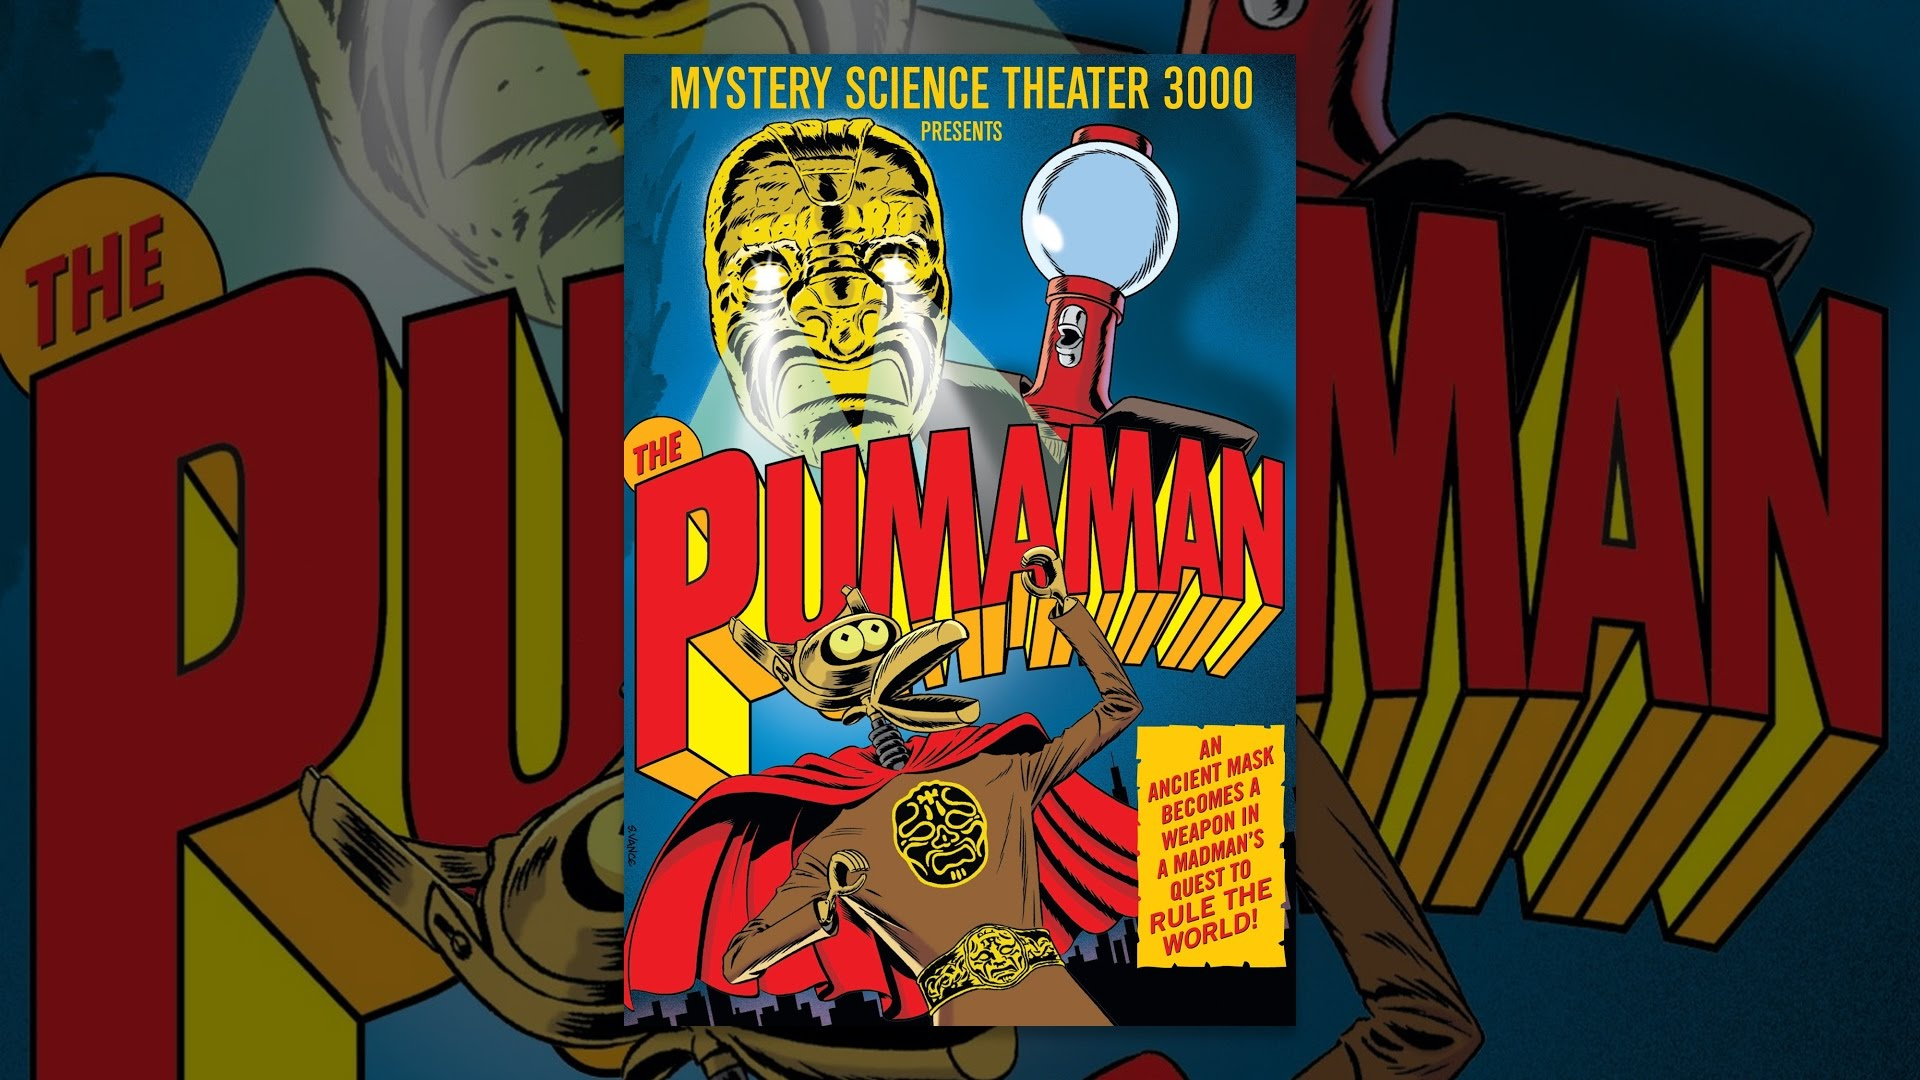 Download Mystery Science Theater 3000: The Pumaman